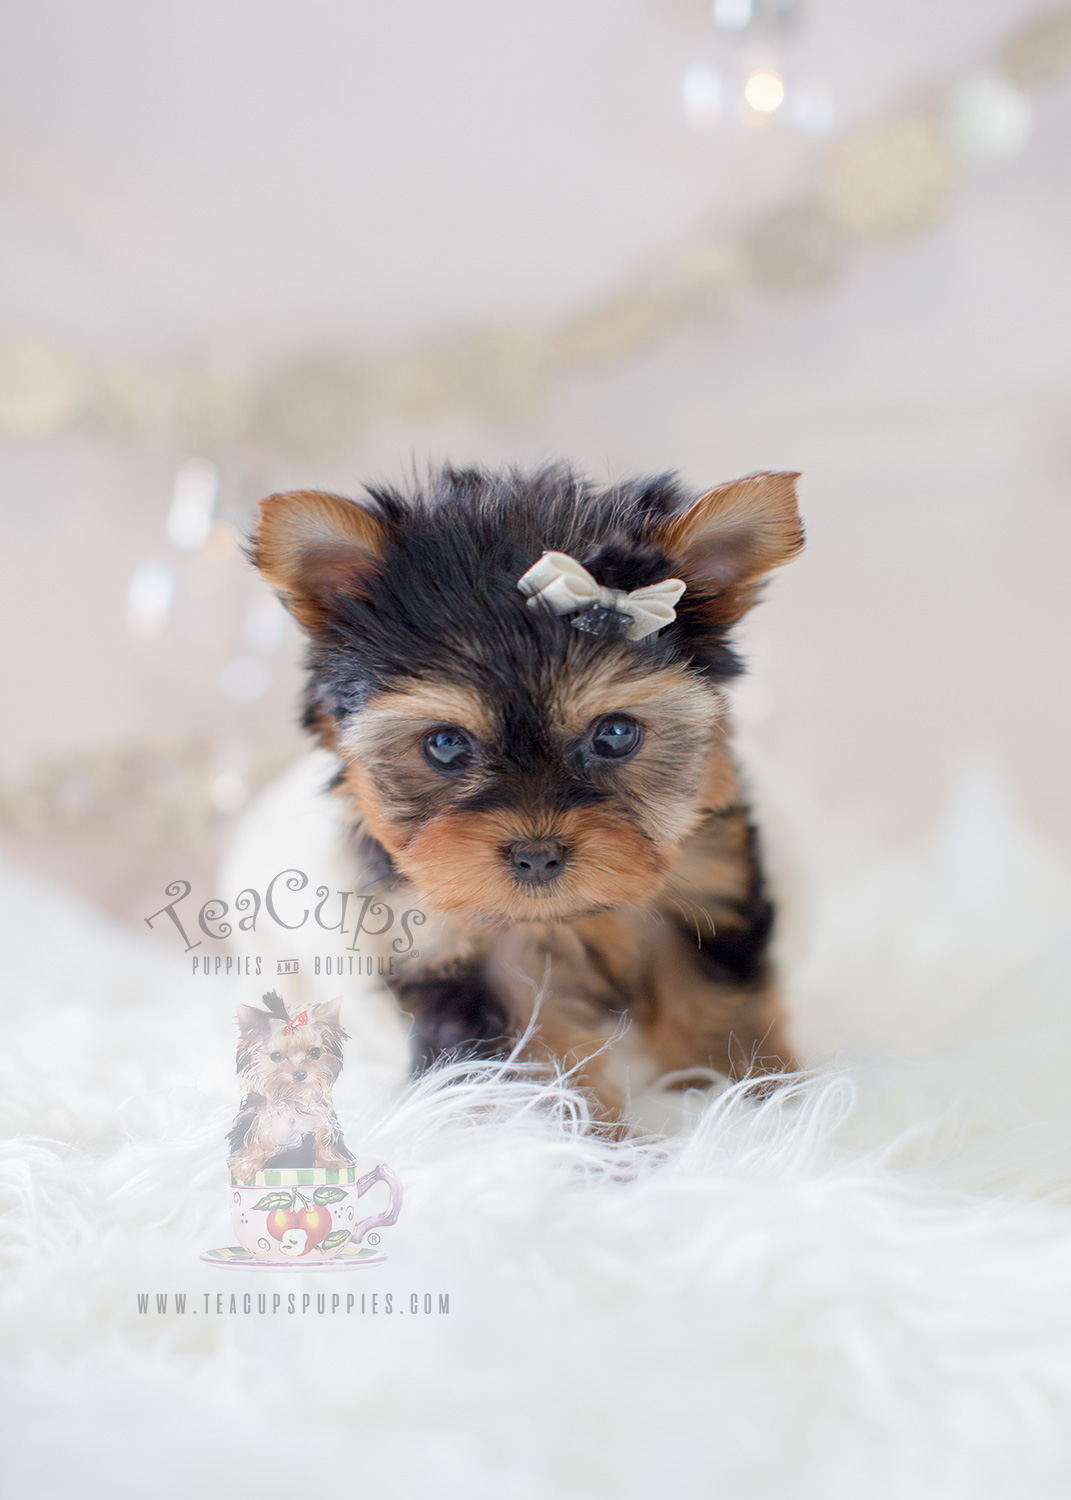 Tiny Teacup Yorkie Puppies For Sale Near Me Cheap : teacup, yorkie, puppies, cheap, Yorkshire, Terriers, Here!, Teacup, Puppies, Boutique